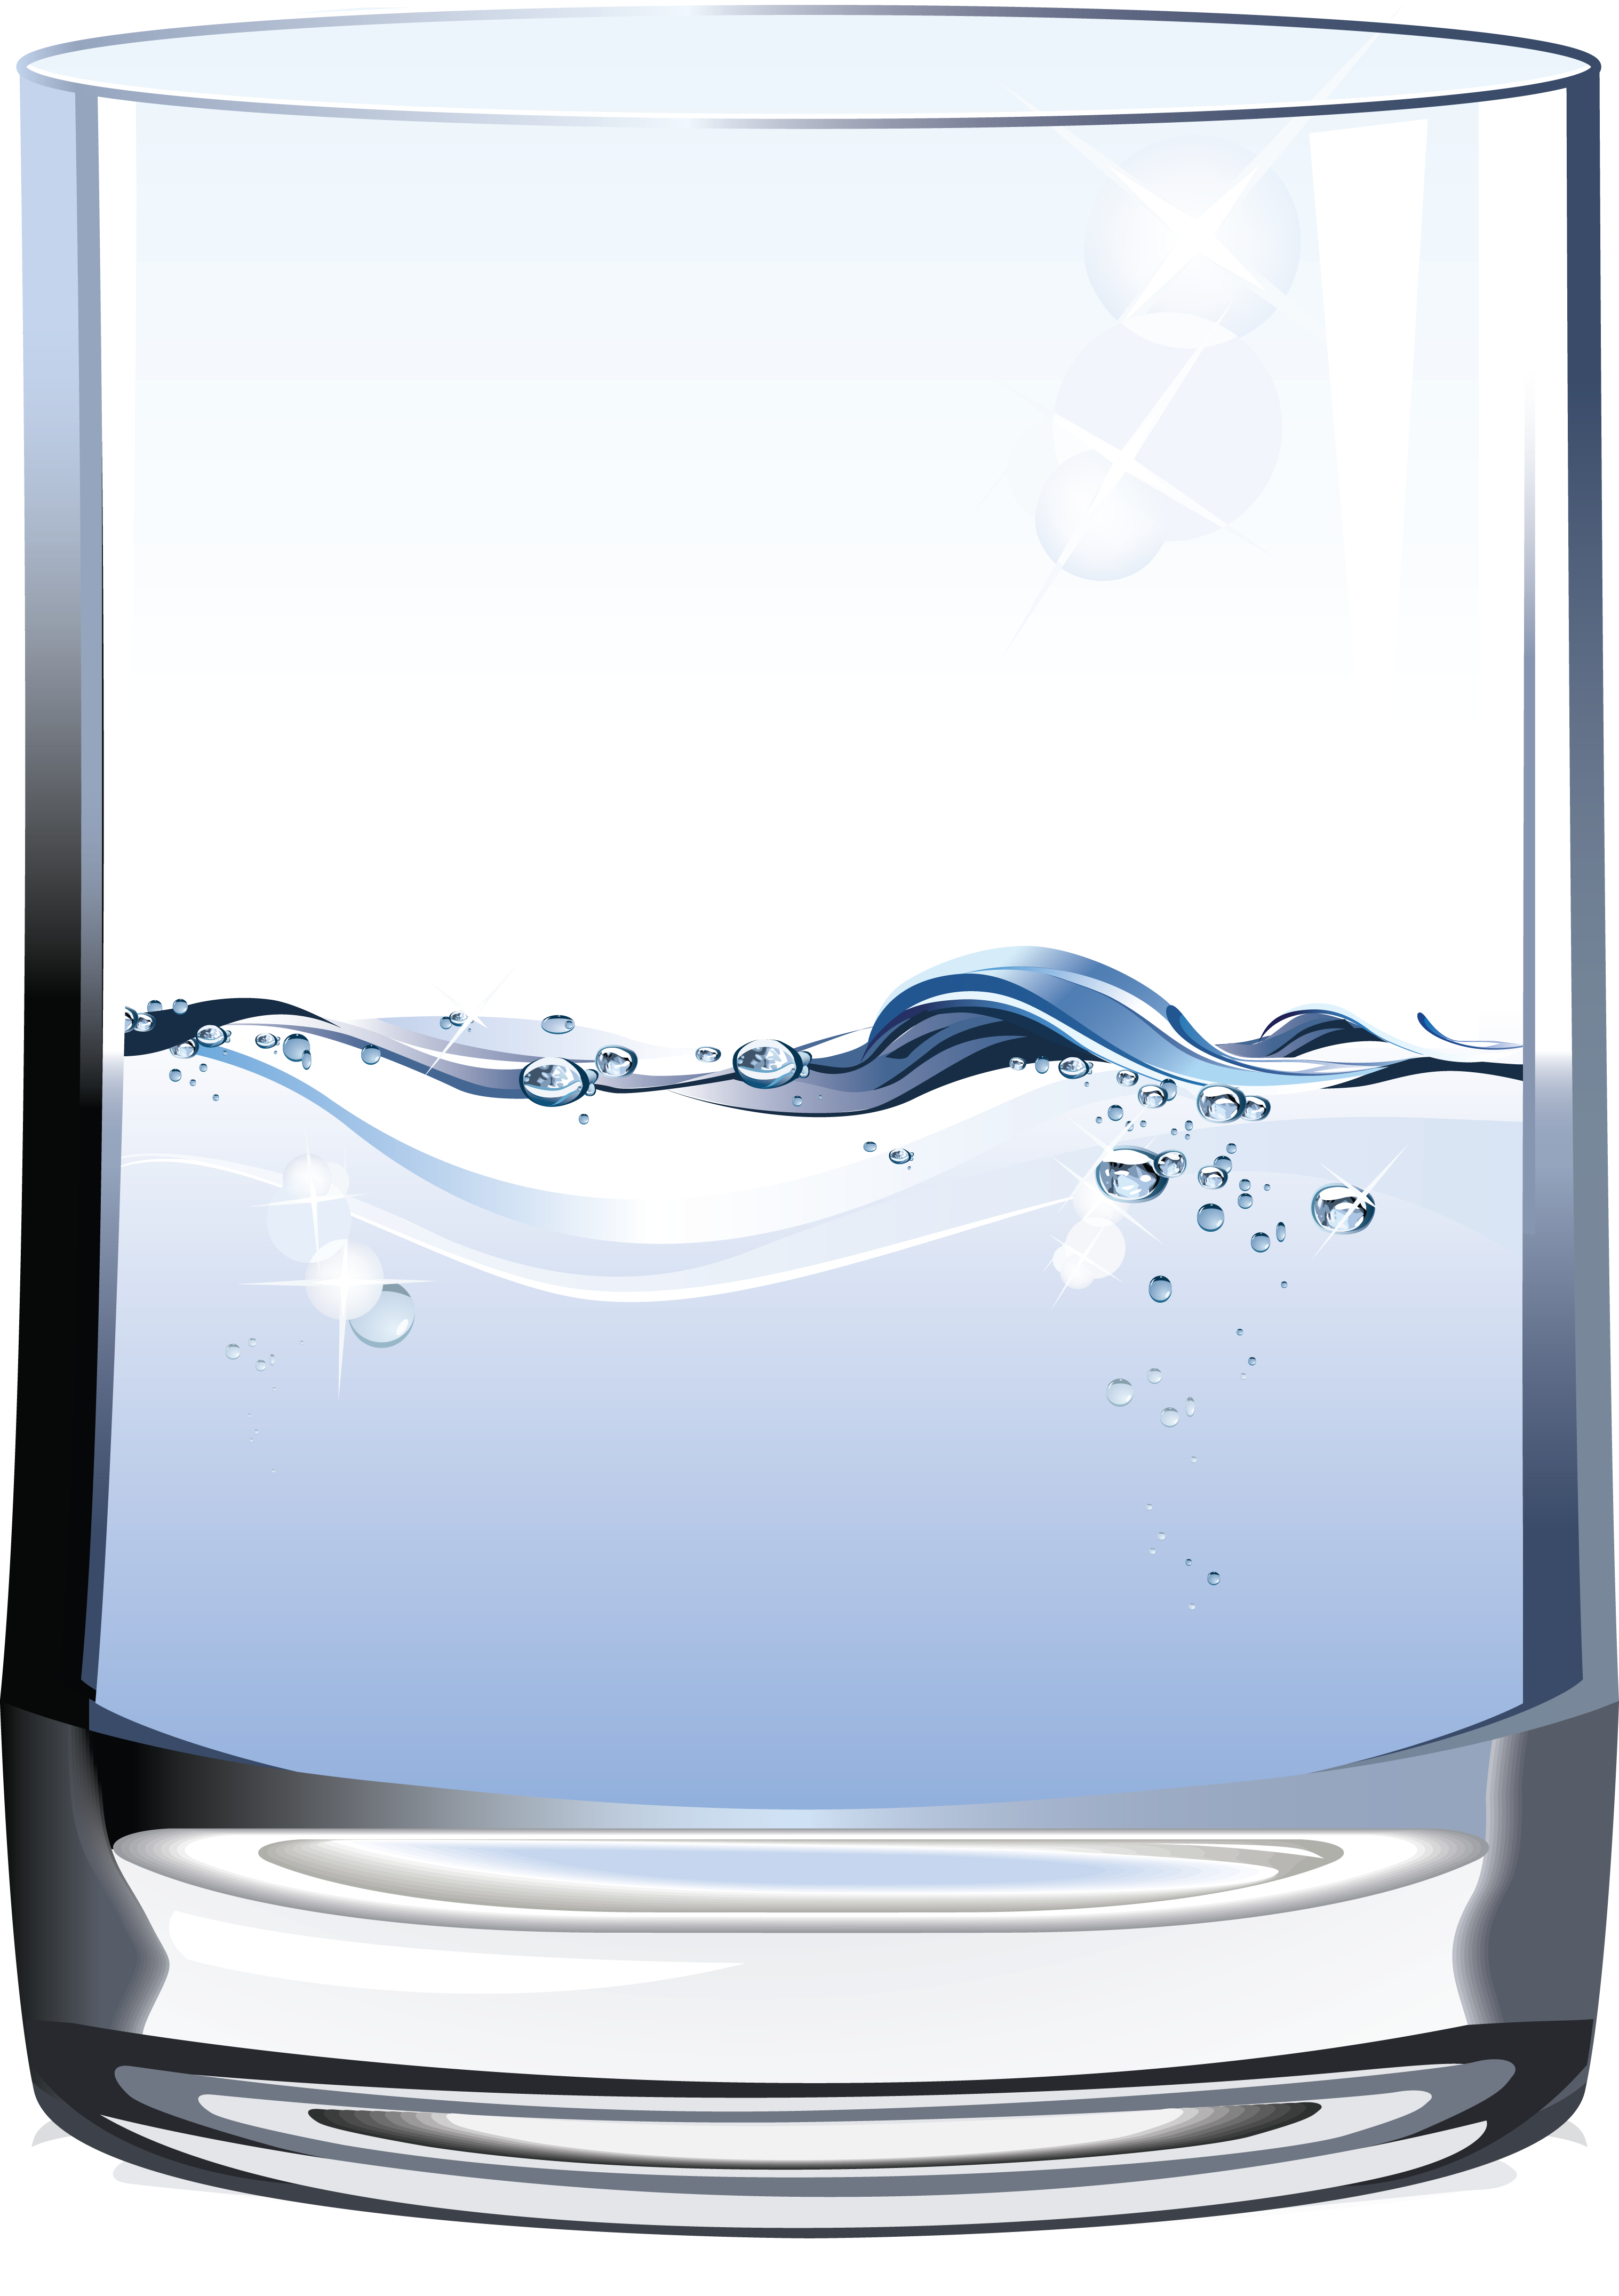 Water glass illustration